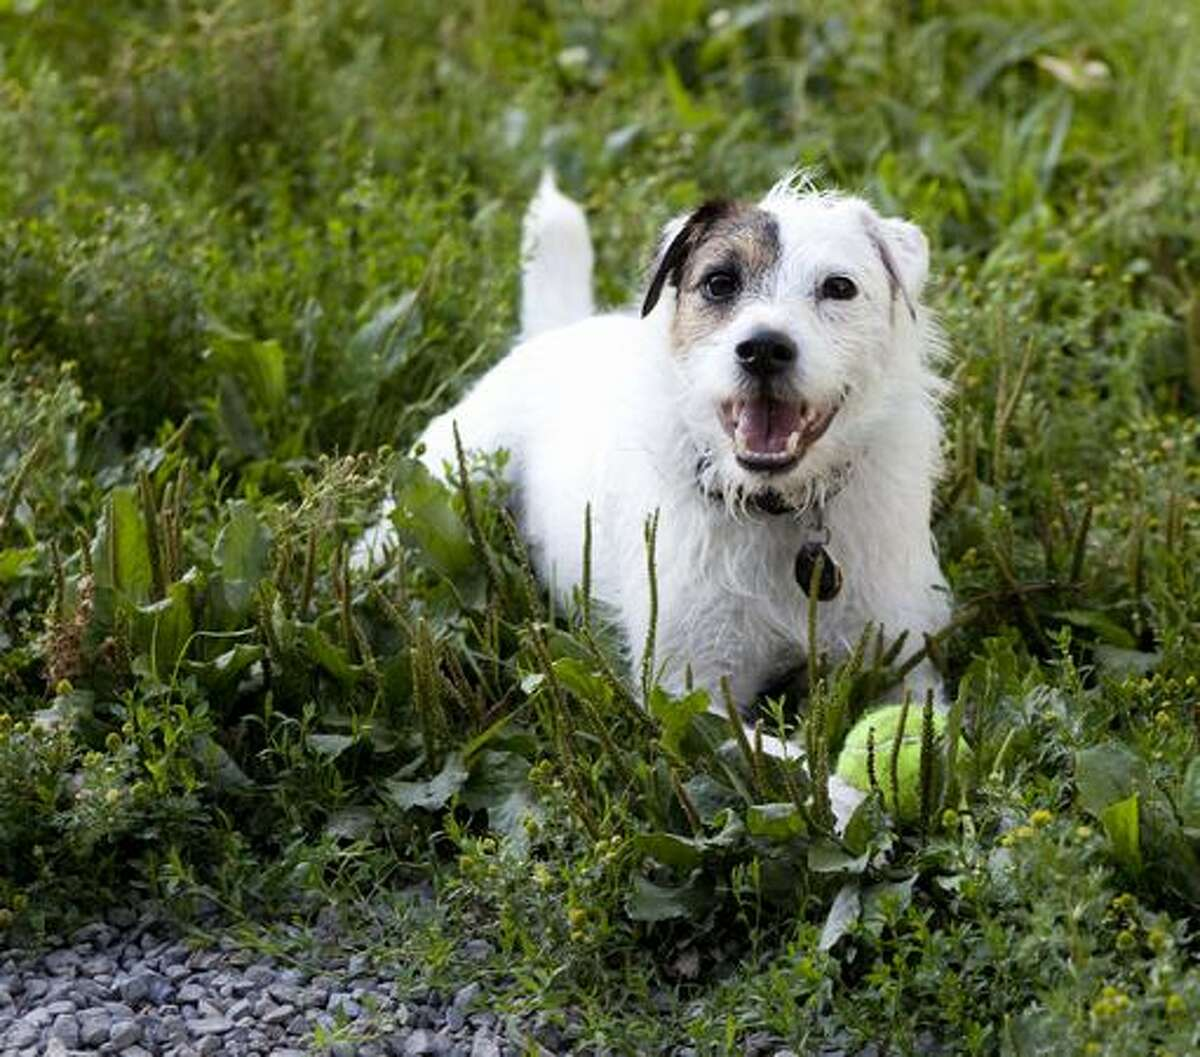 Mason the Jack Russell Terrier lays down in the grass after retrieving his ball.